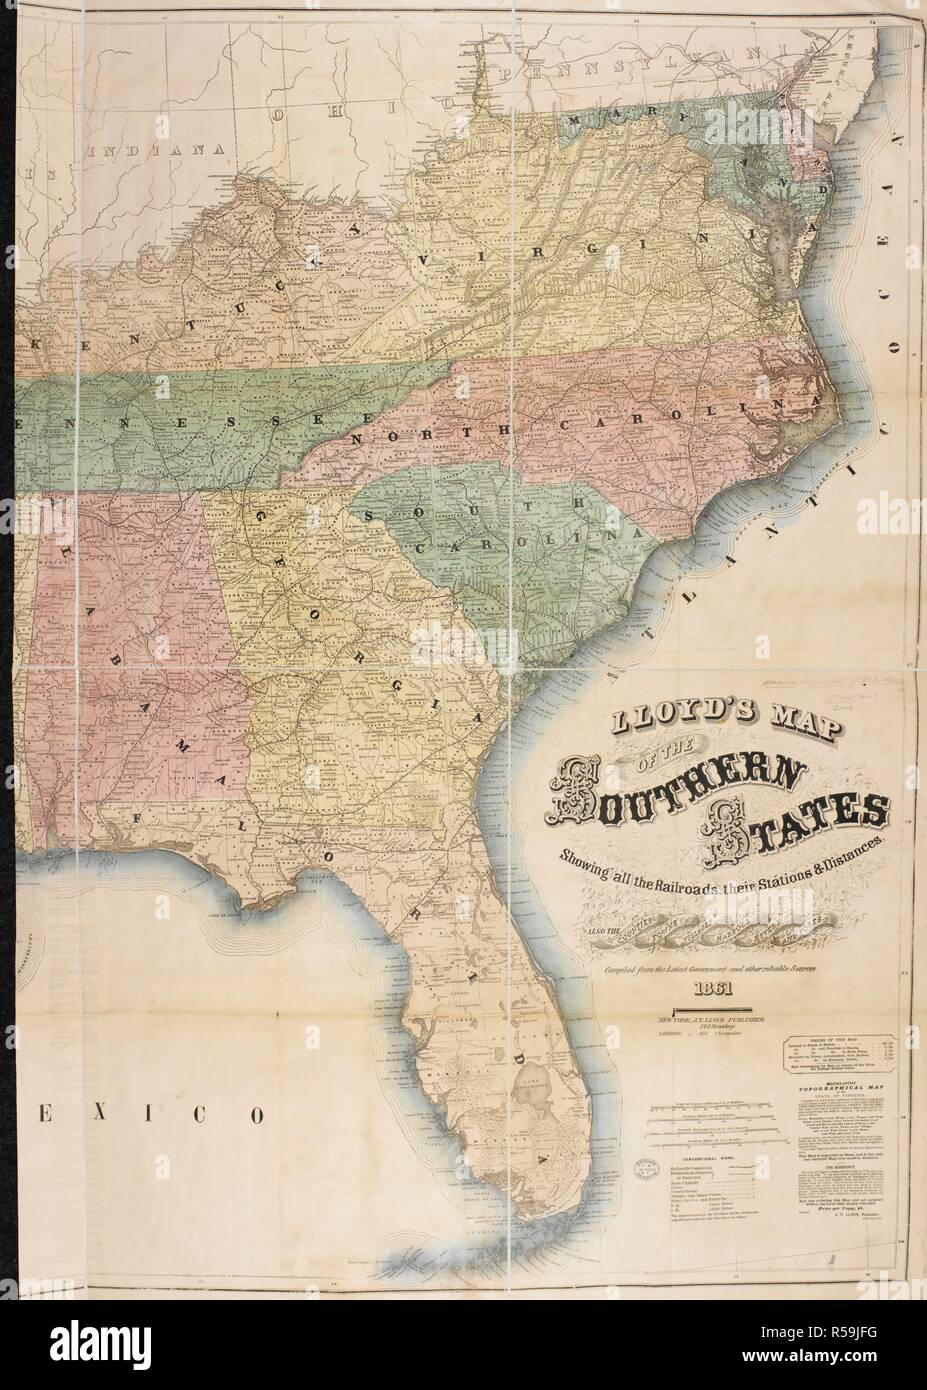 c8.alamy.com/comp/R59JFG/a-map-of-the-southern-sta...